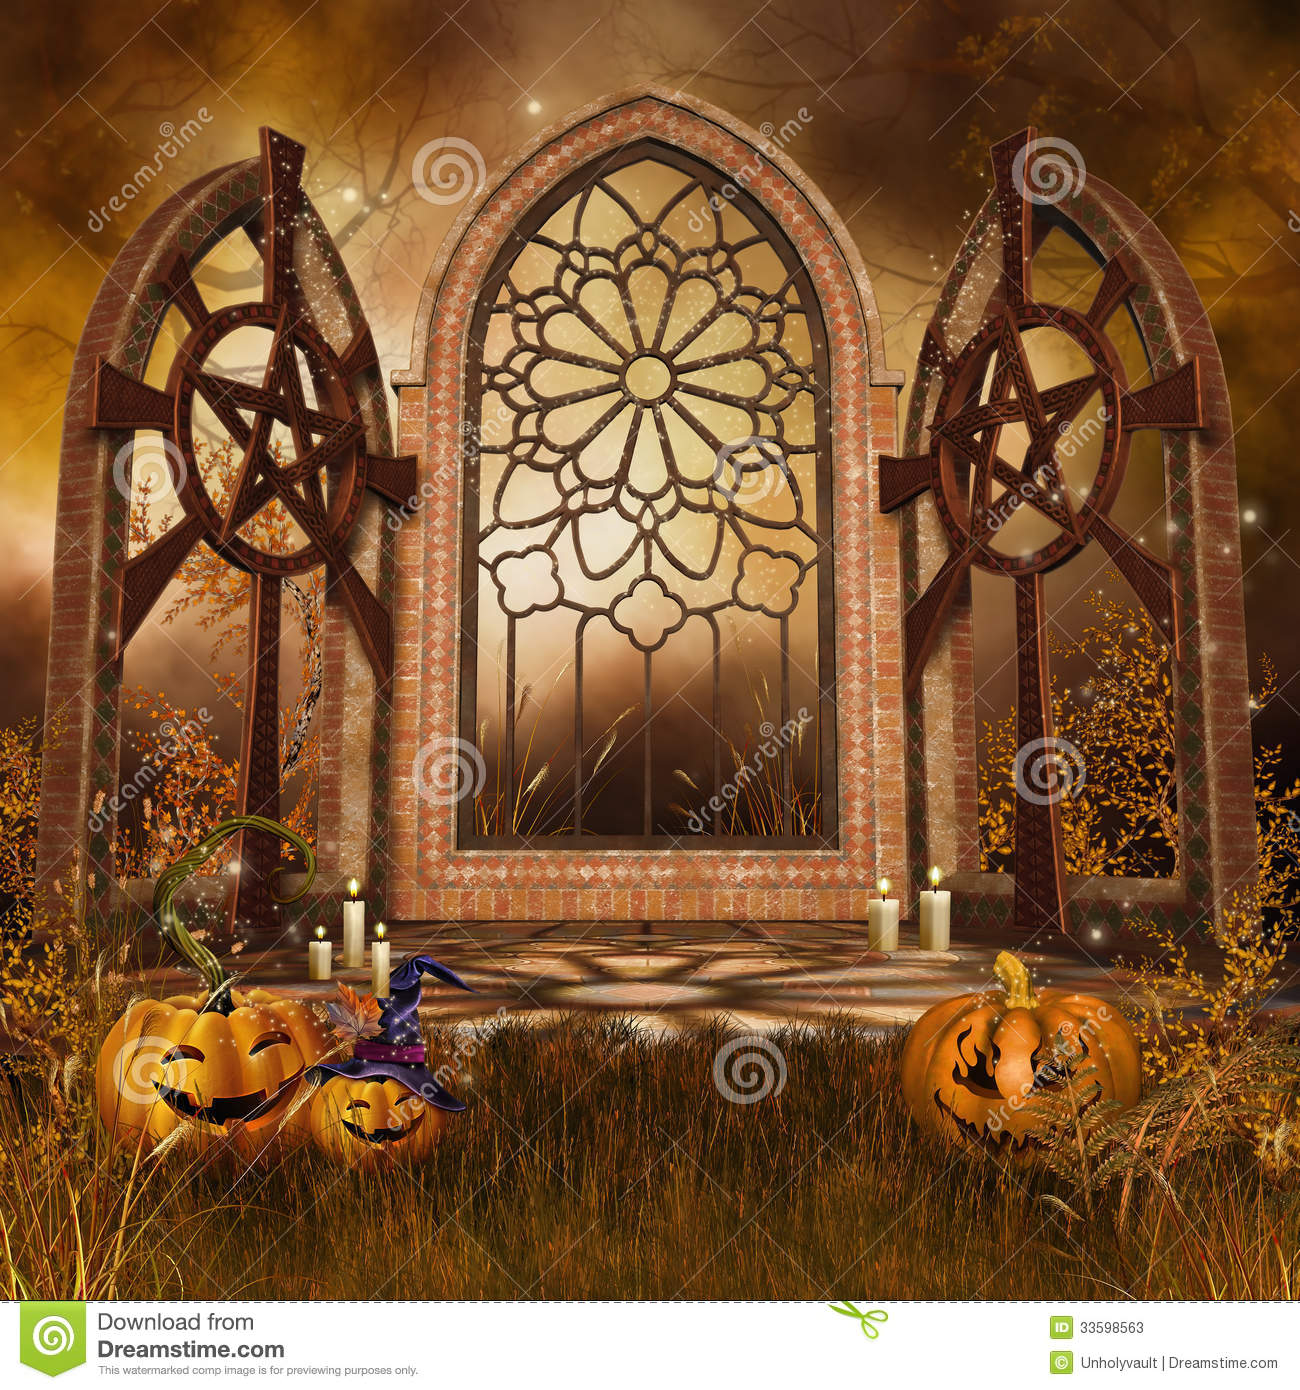 Cute Fairy Wallpaper 3d Gothic Shrine With Pumpkins Stock Photos Image 33598563